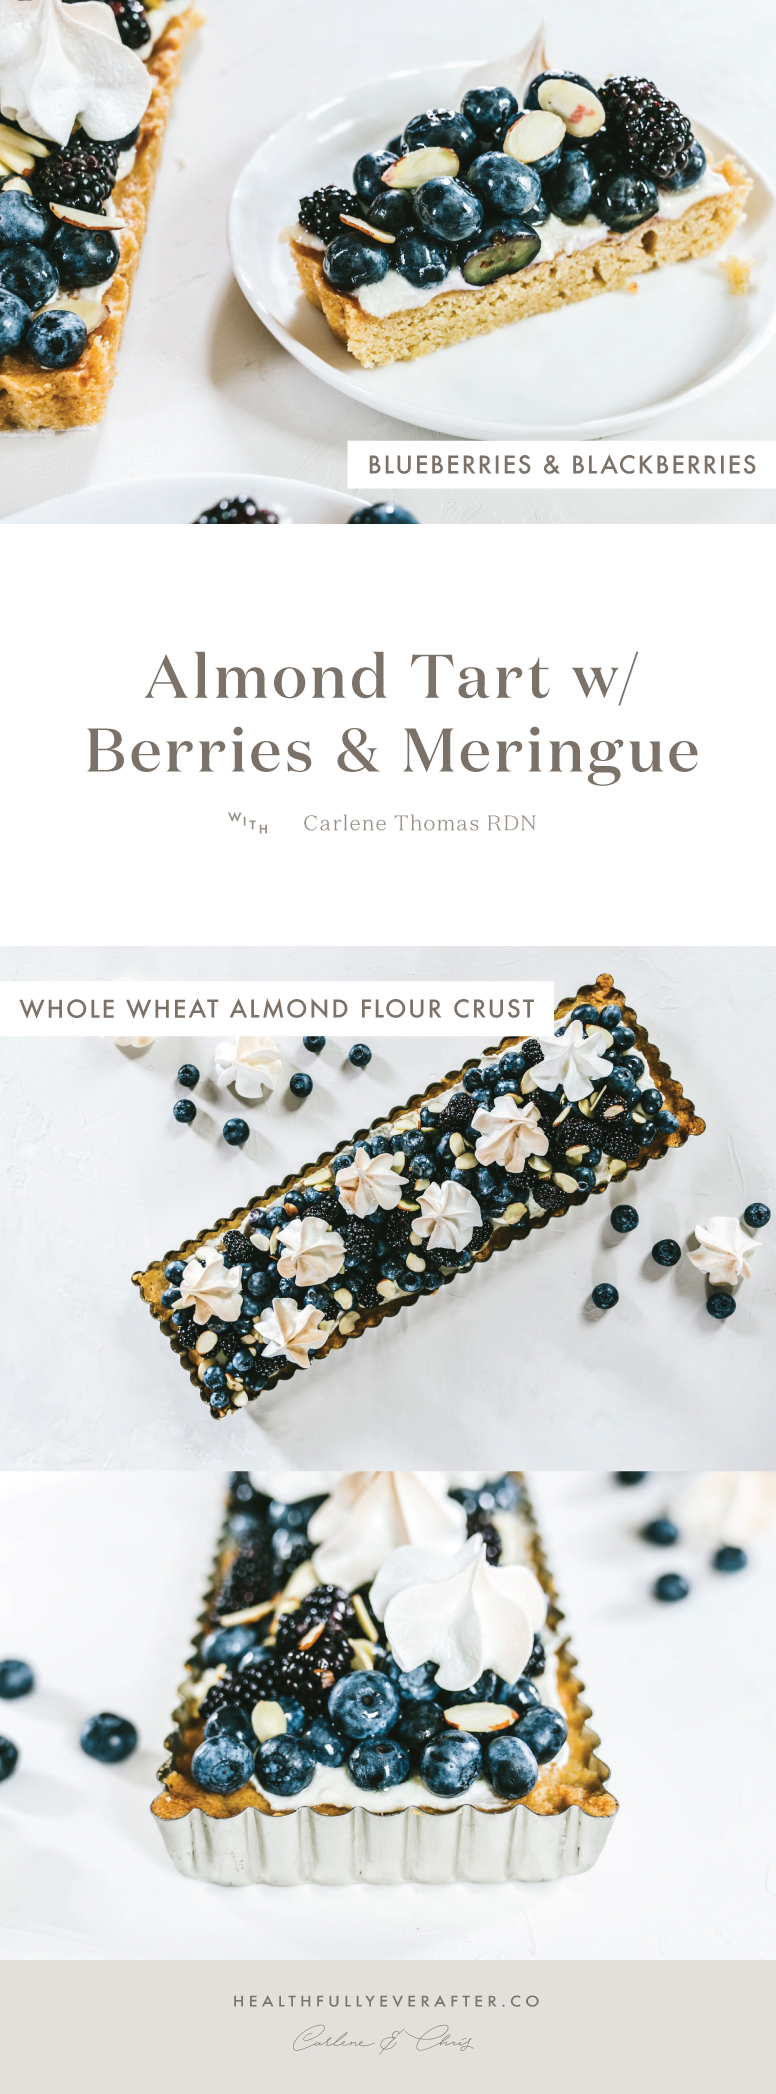 almond tart with berries